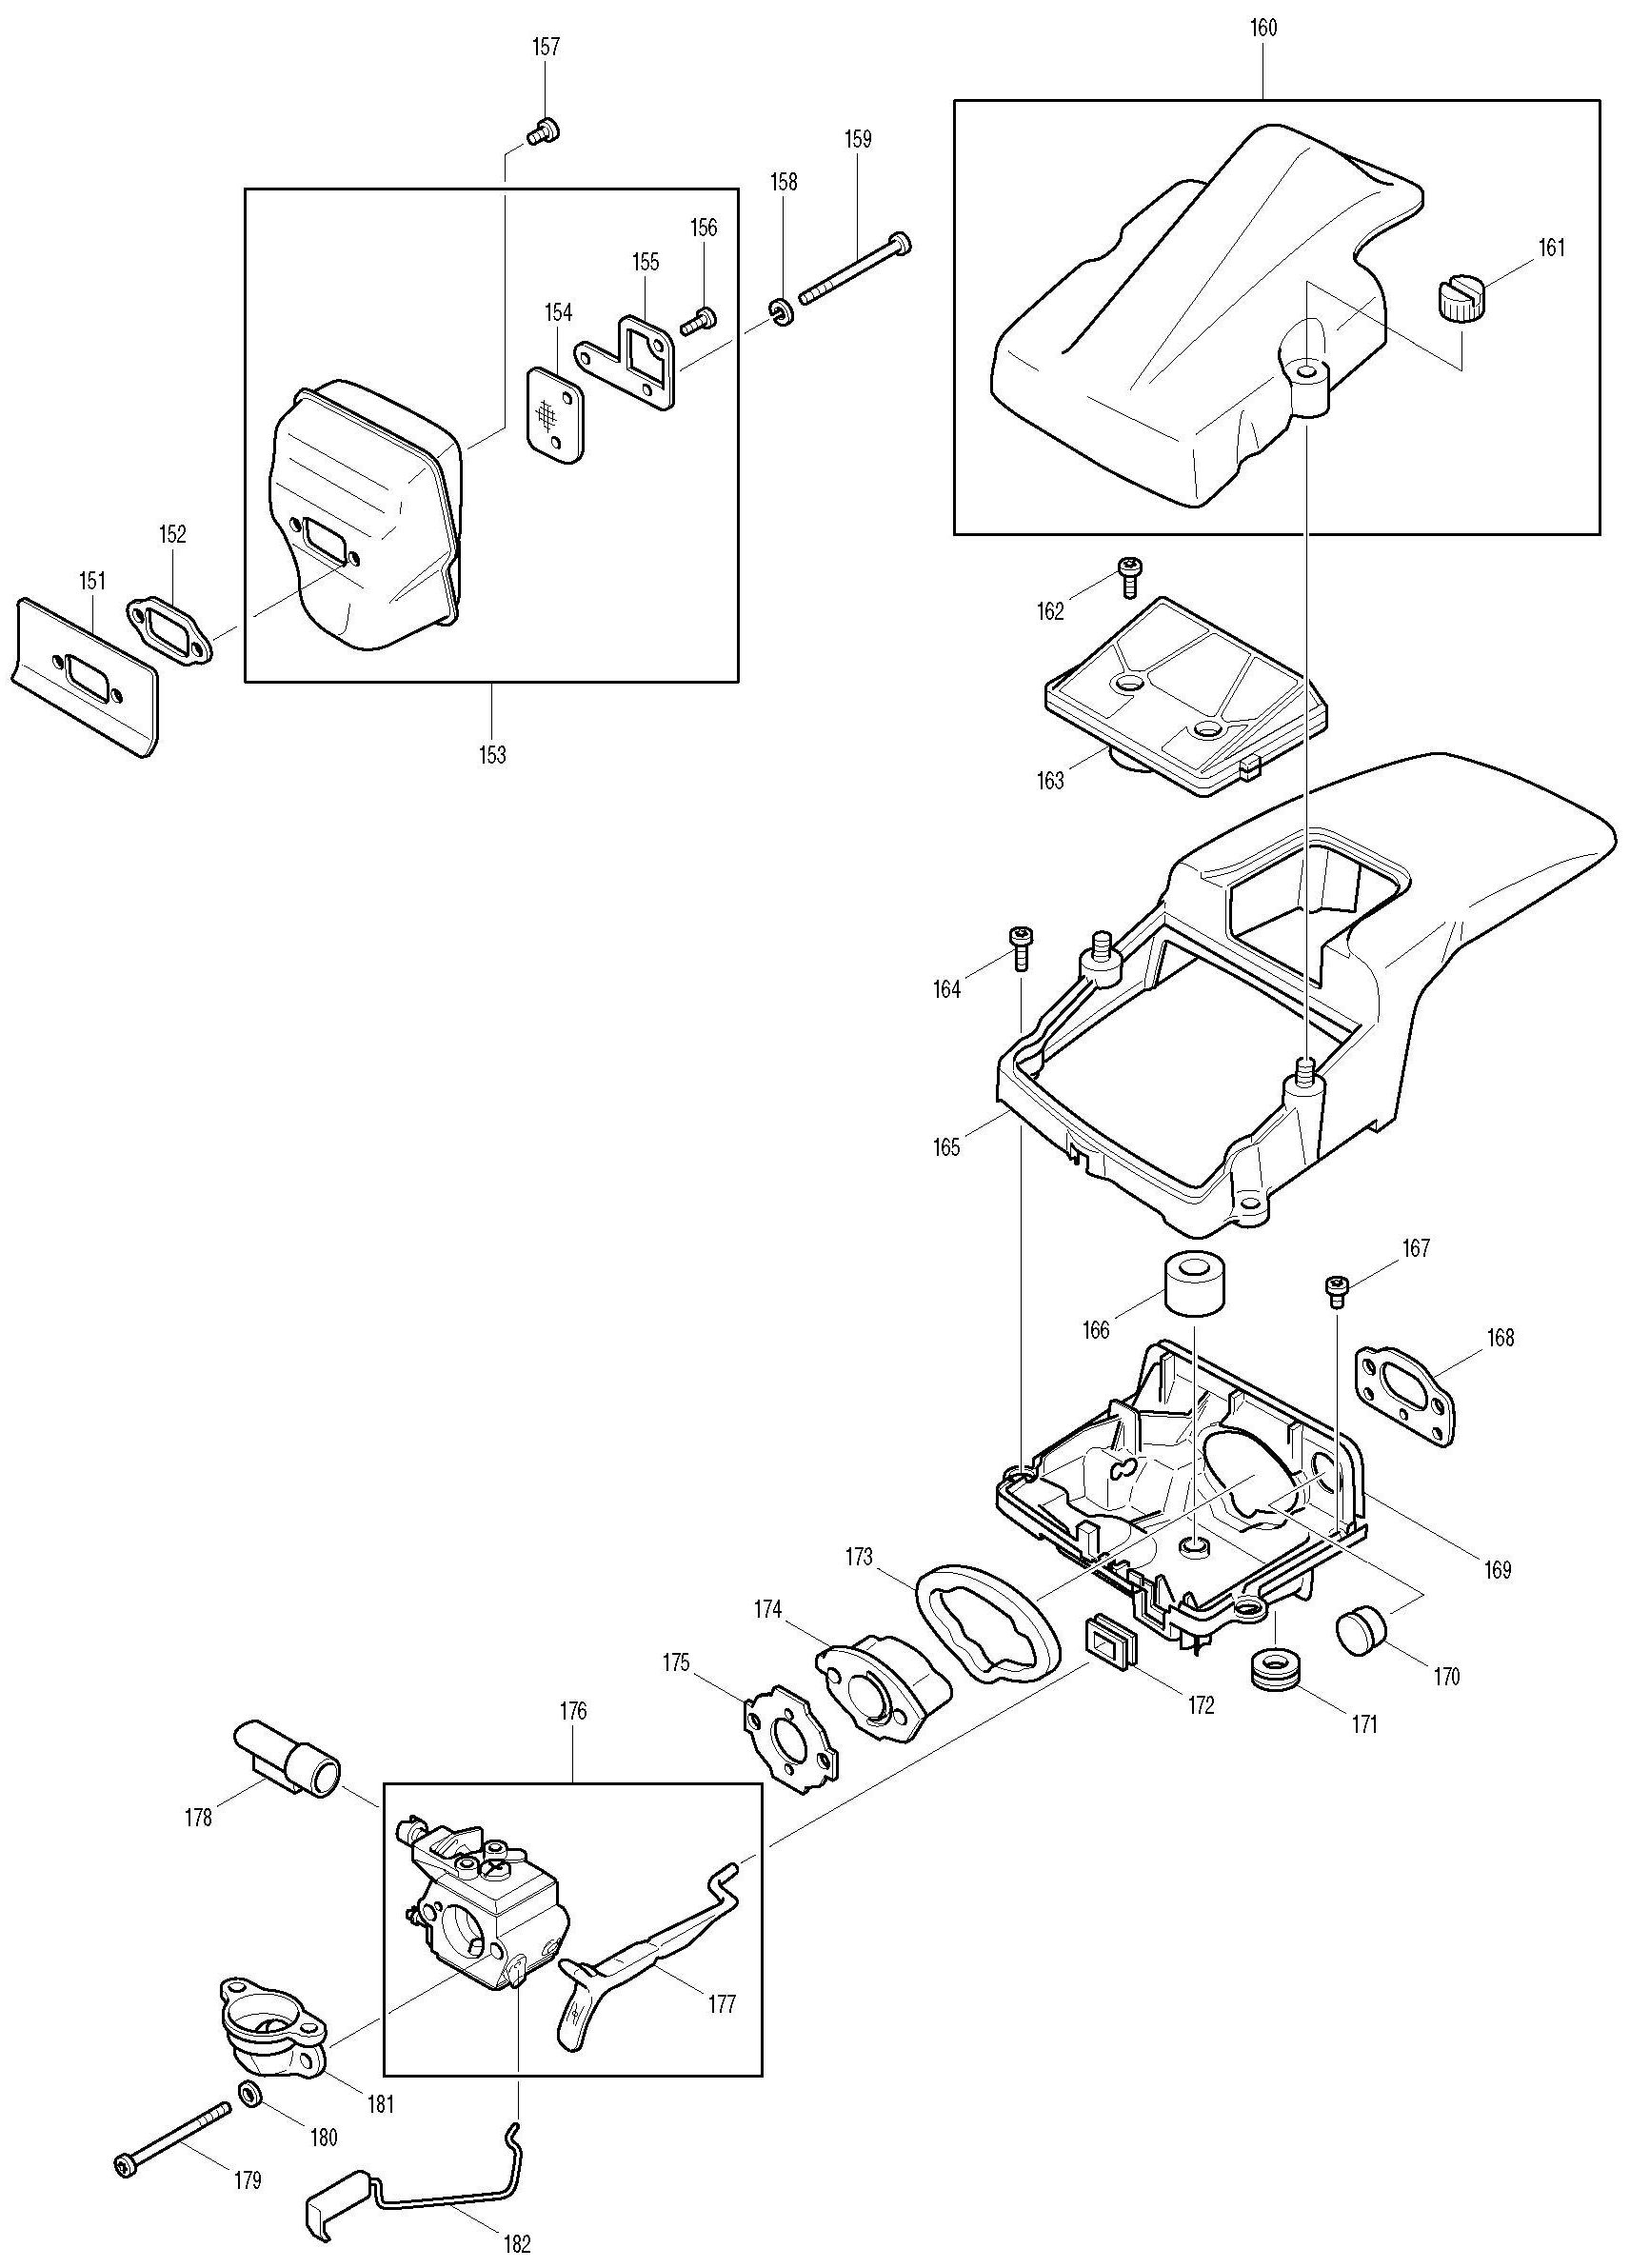 Spares for Makita Dcs520 Chainsaw 52cc SPARE_DCS520 from